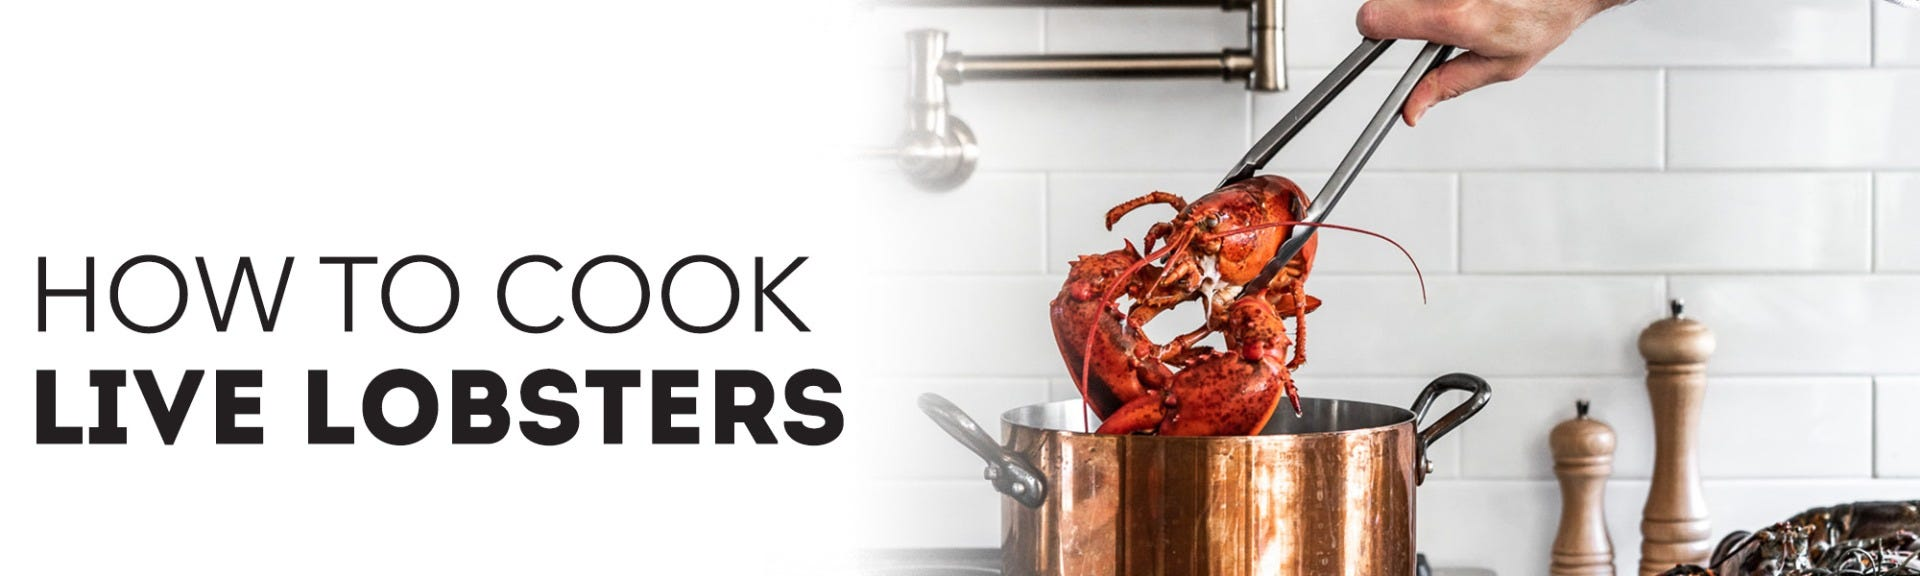 How to cook live lobsters